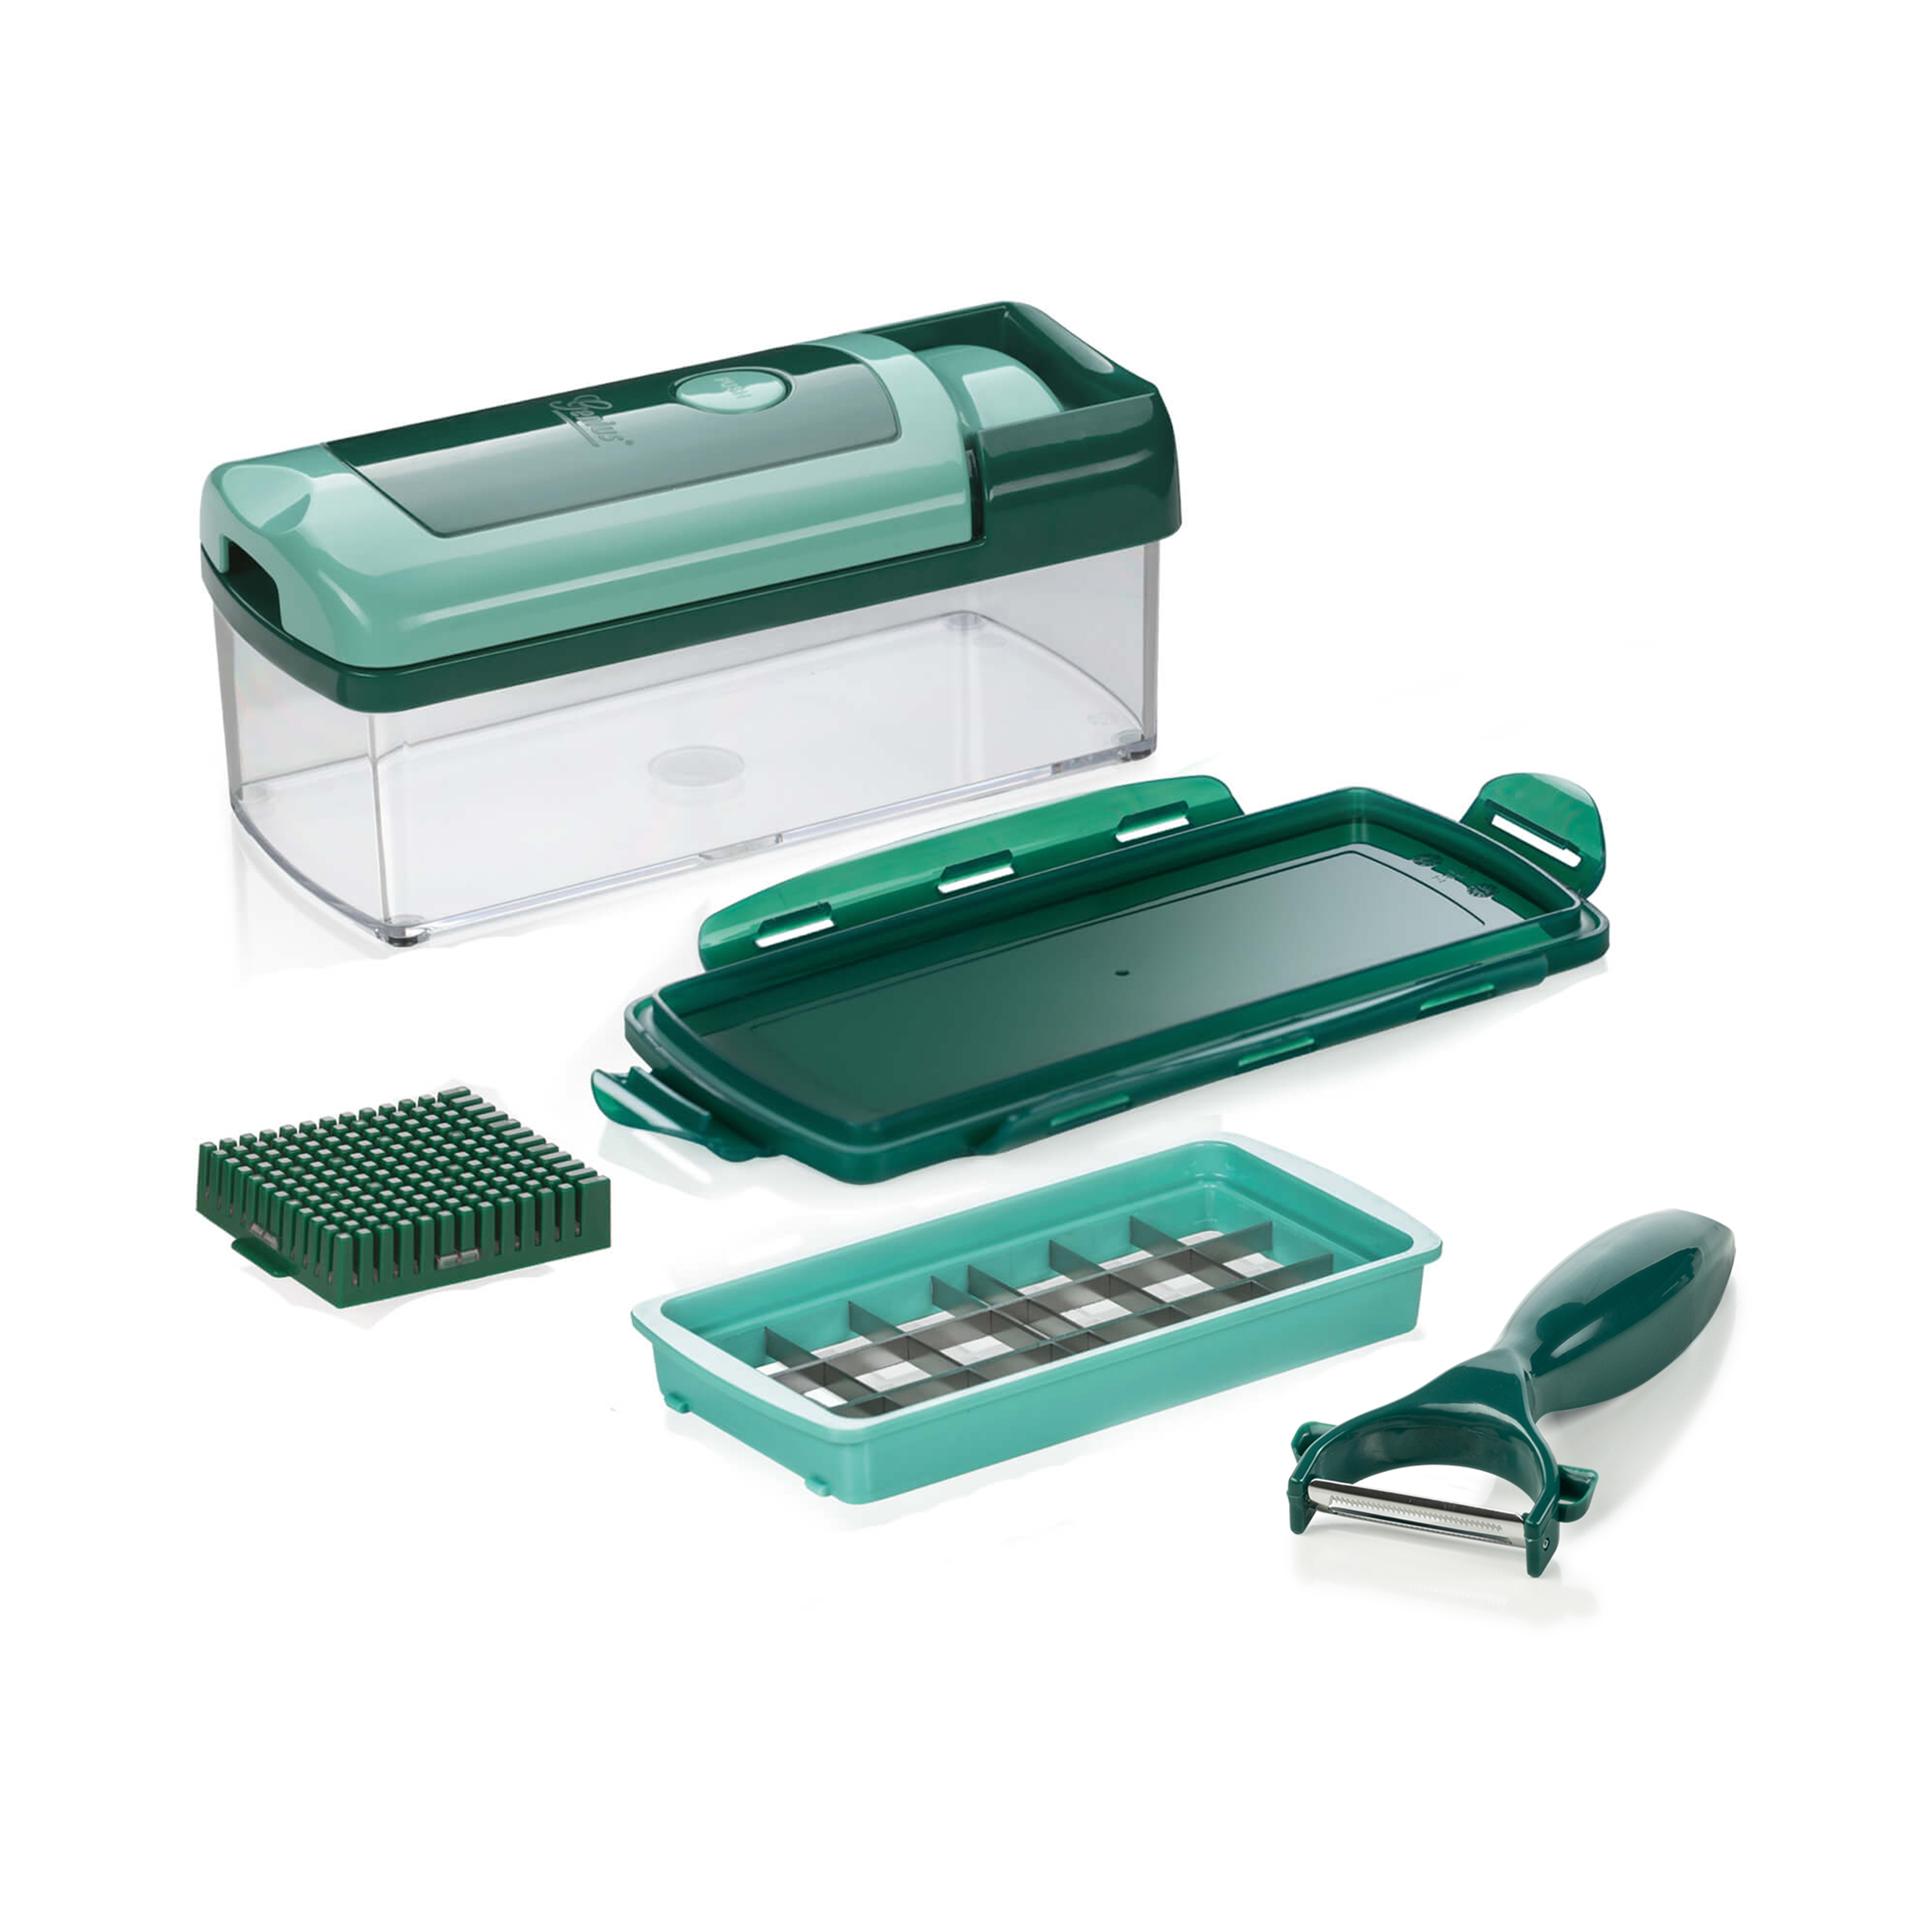 nicer dicer fusion smart set 7tlg inkl profi sch ler geschenke unter 50 geschenke. Black Bedroom Furniture Sets. Home Design Ideas